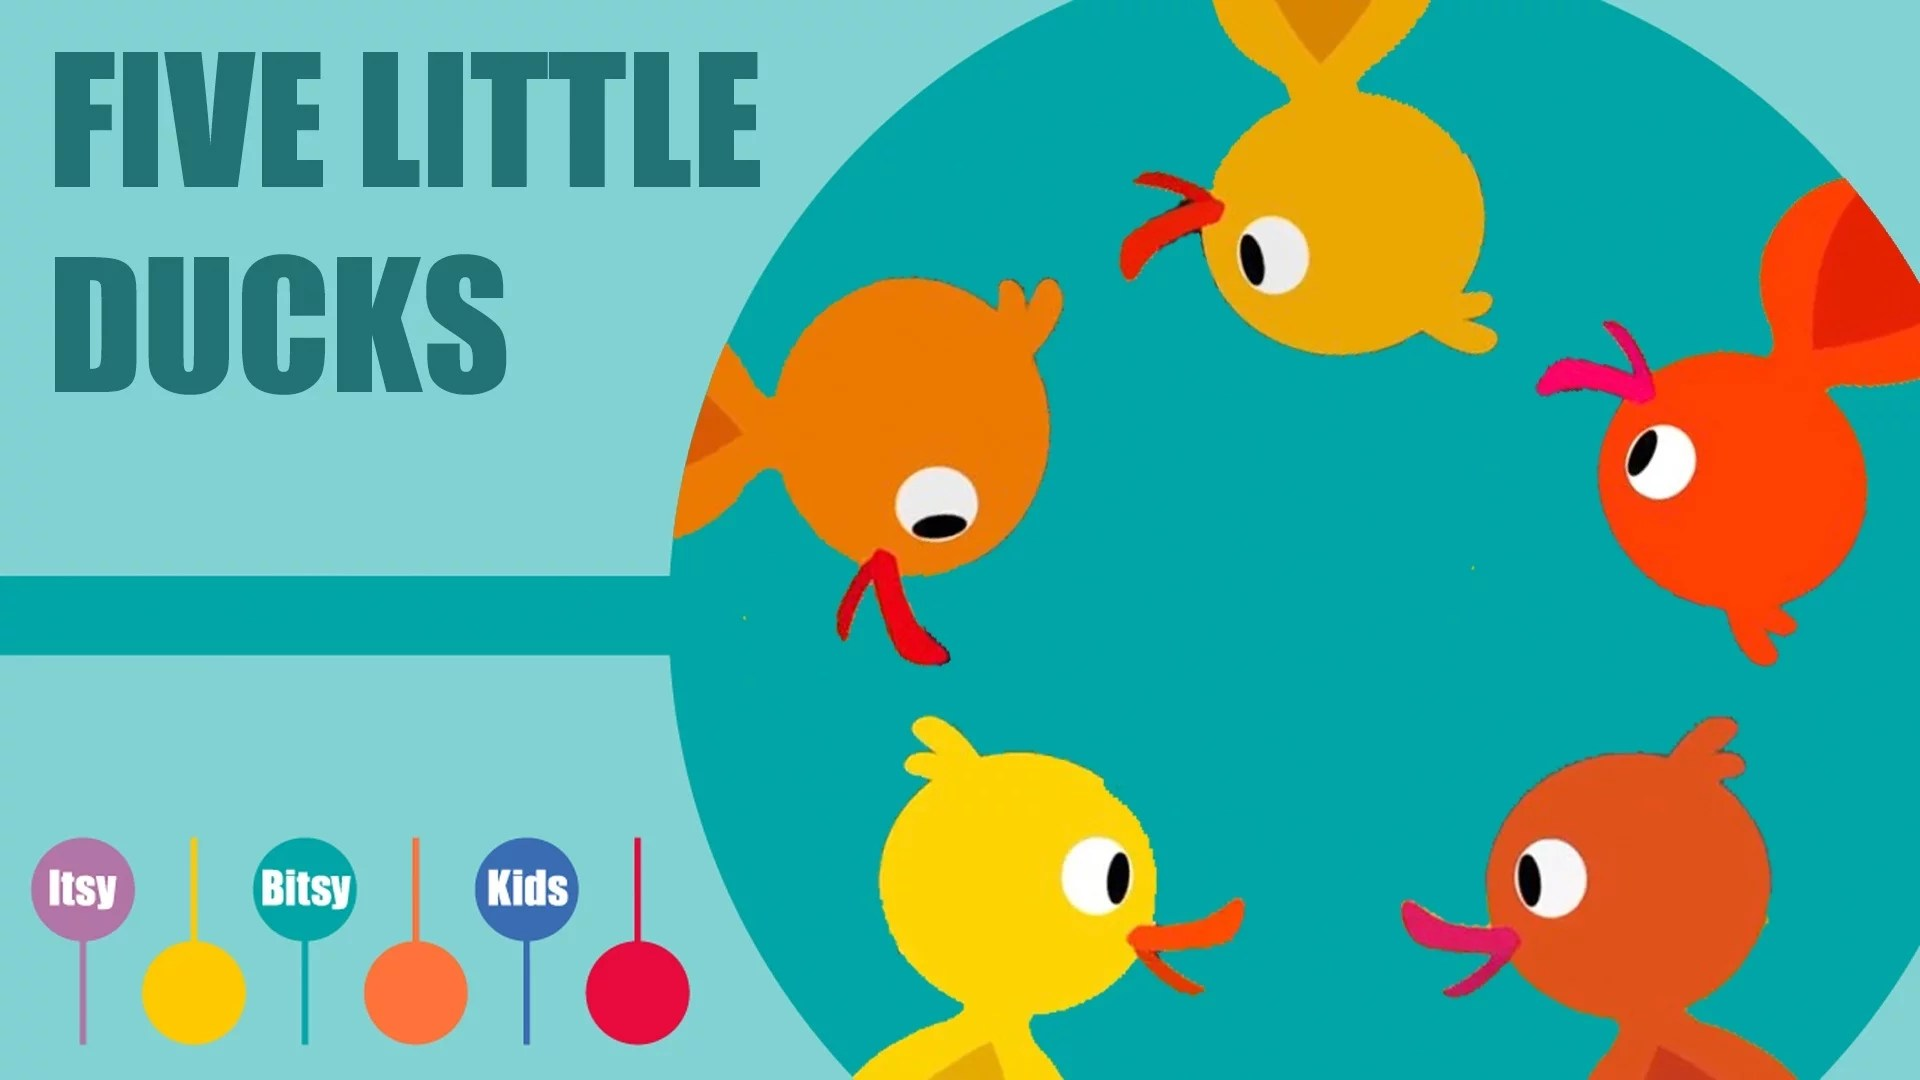 Five Little Ducks Sheet Music With Chords And Lyrics